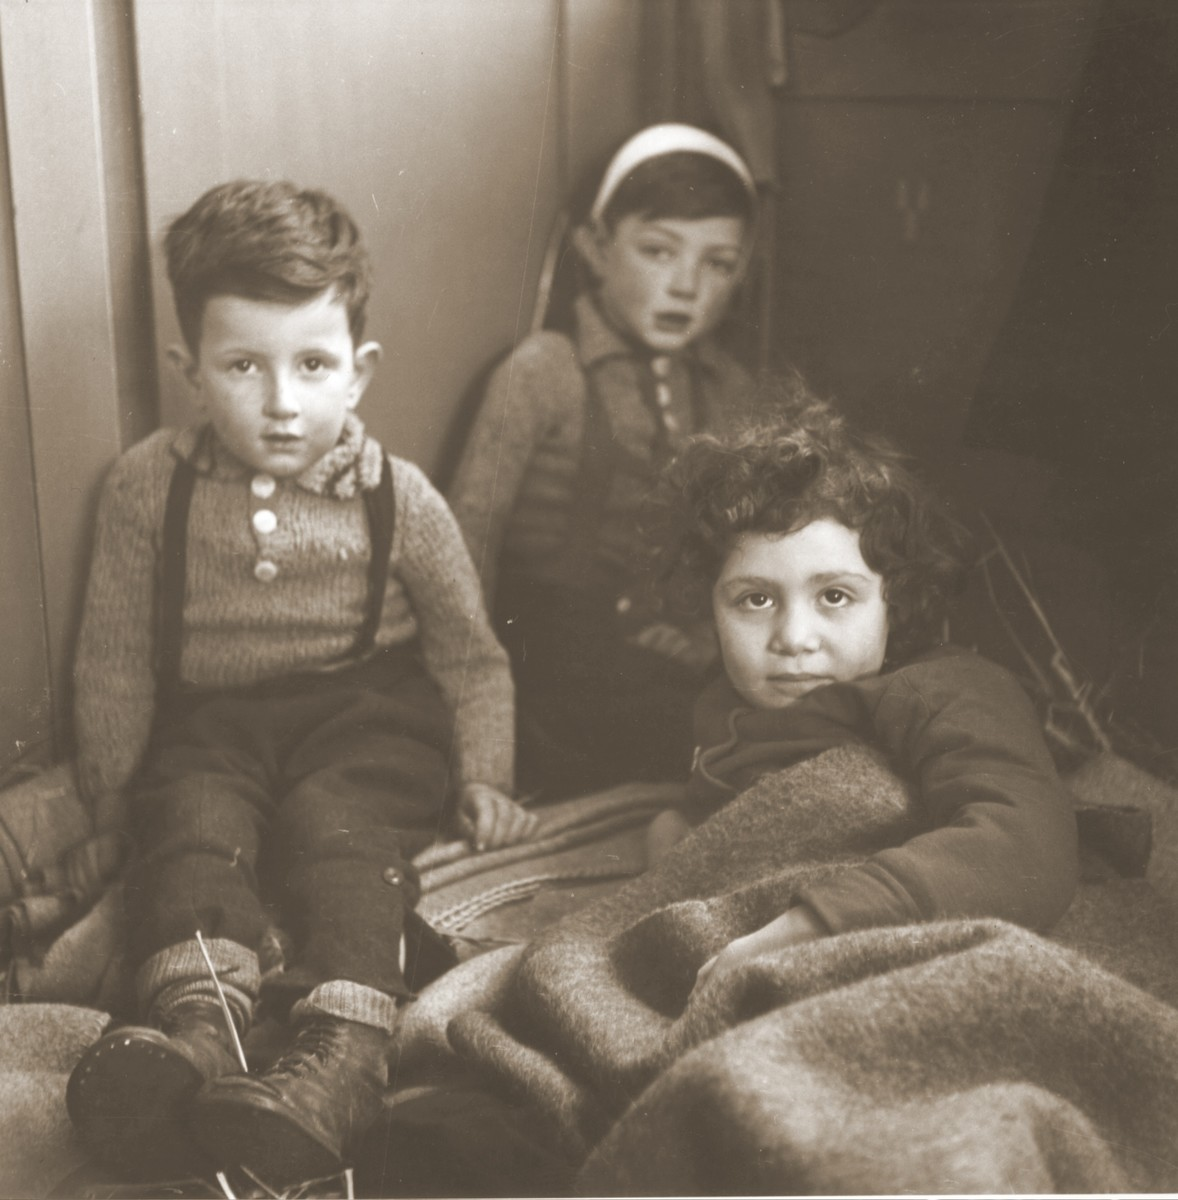 Three Jewish children rescued from Theresienstadt  rest in the Hadwigschulhaus in St. Gallen.